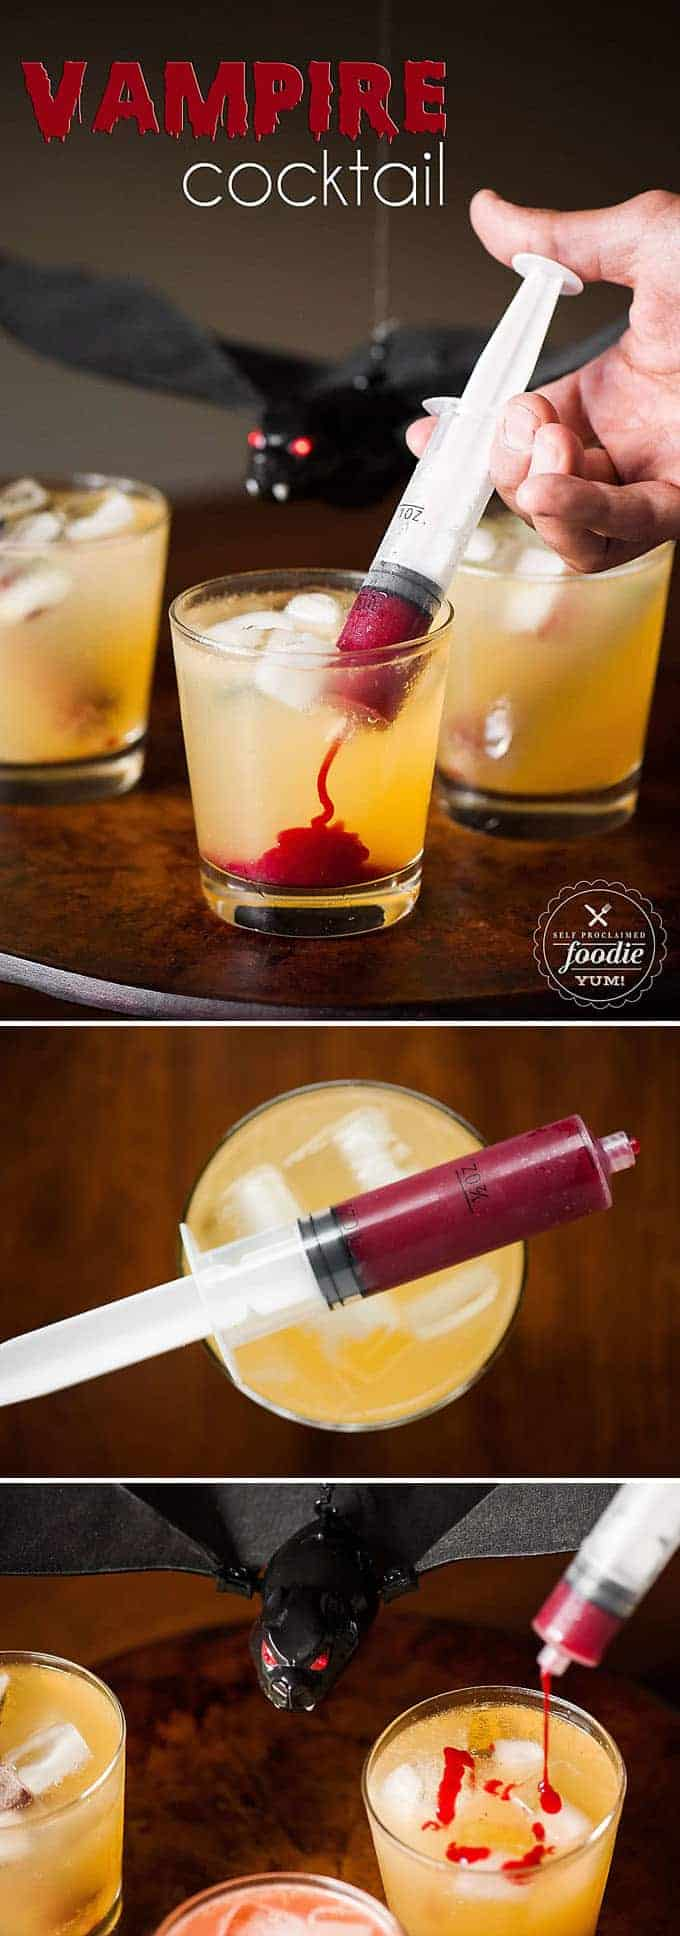 Vampire Cocktail is the perfect spooky Halloween drink. Syringes filled with sweetened raspberry puree look gory, but taste amazing! #halloween #halloweendrink #halloweencocktail #vampirecocktail #fakeblood #halloweenparty